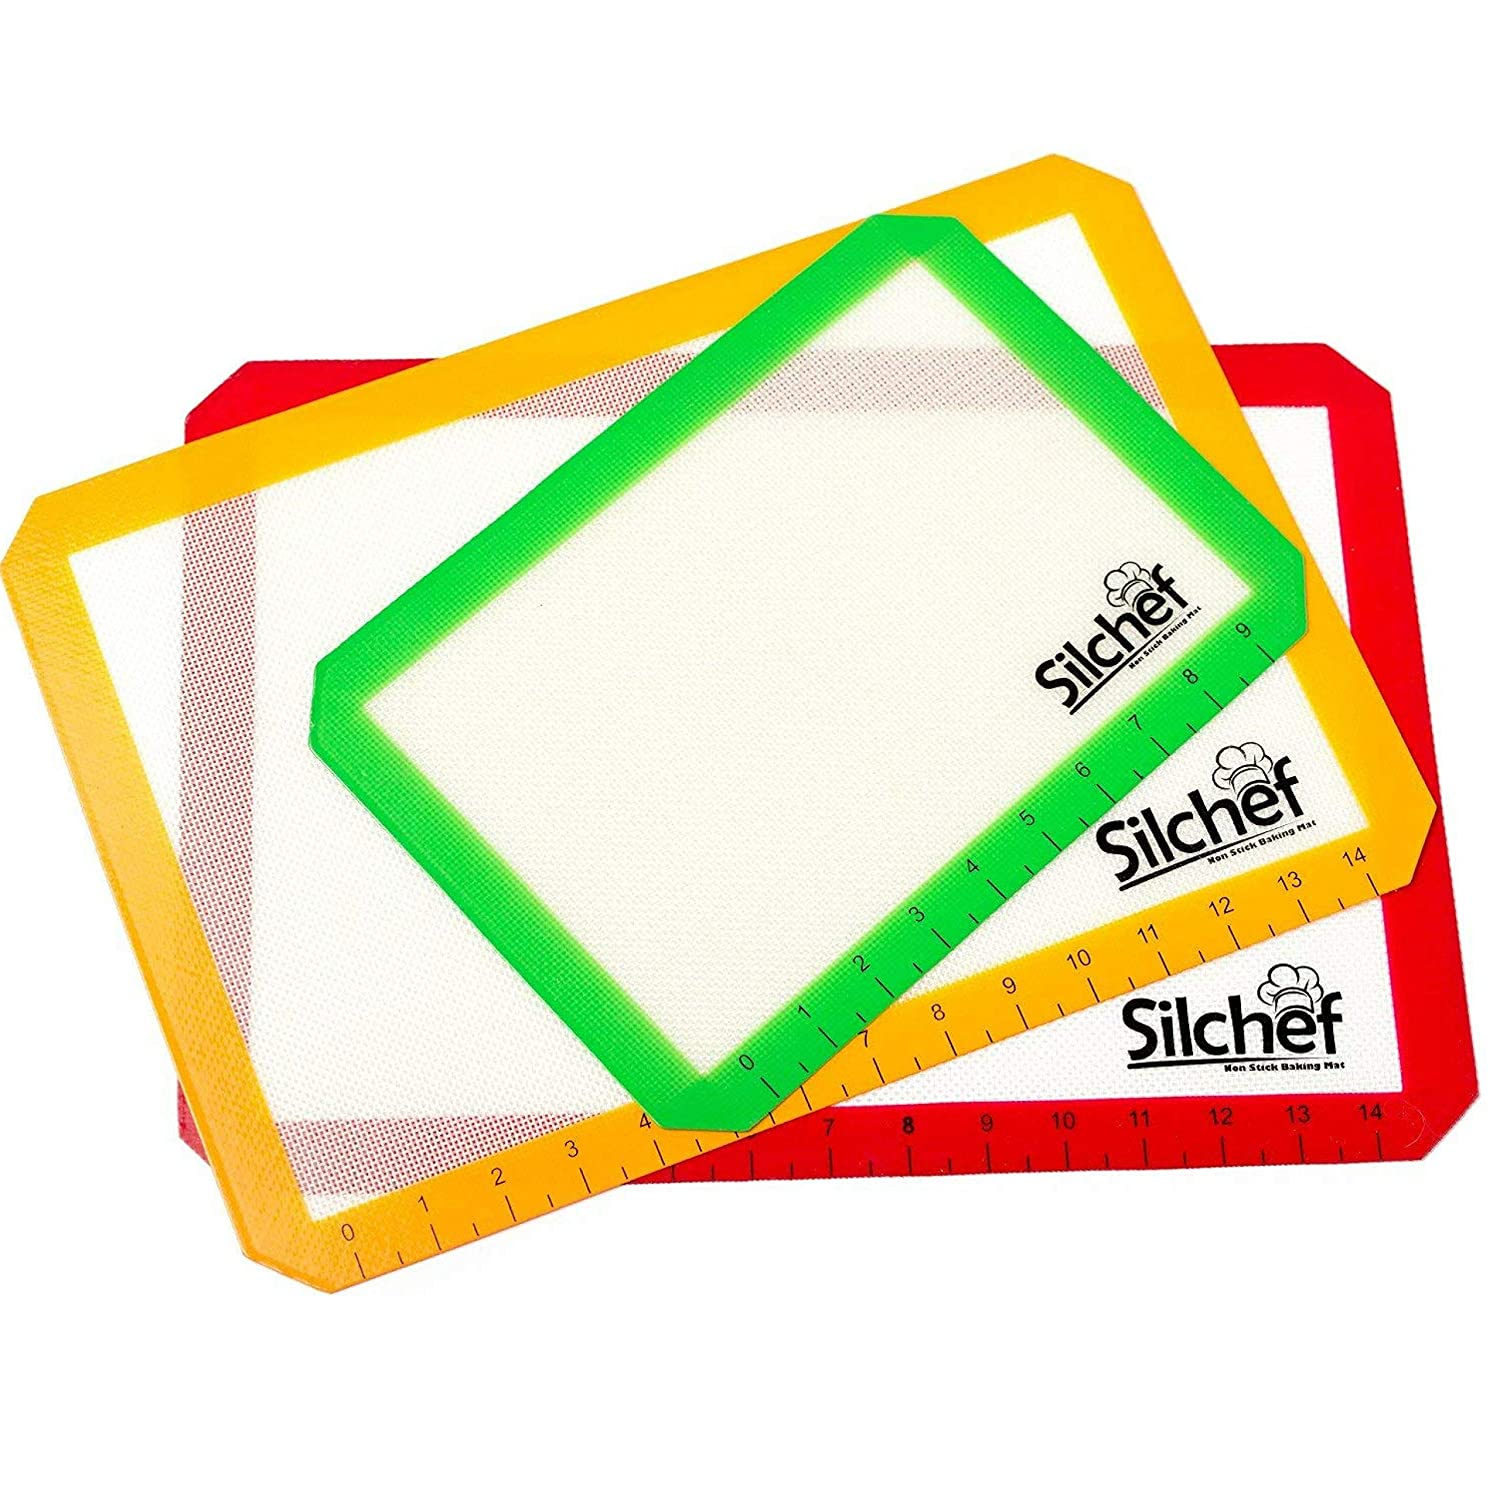 Silchef Silicone Baking Mat – 3 Pack Non Stick Baking Mats with Measurements, 2 Half Sheet Liners and 1 Quarter Sheet Baking Mat, Professional Quality, Non Toxic and FDA Approved